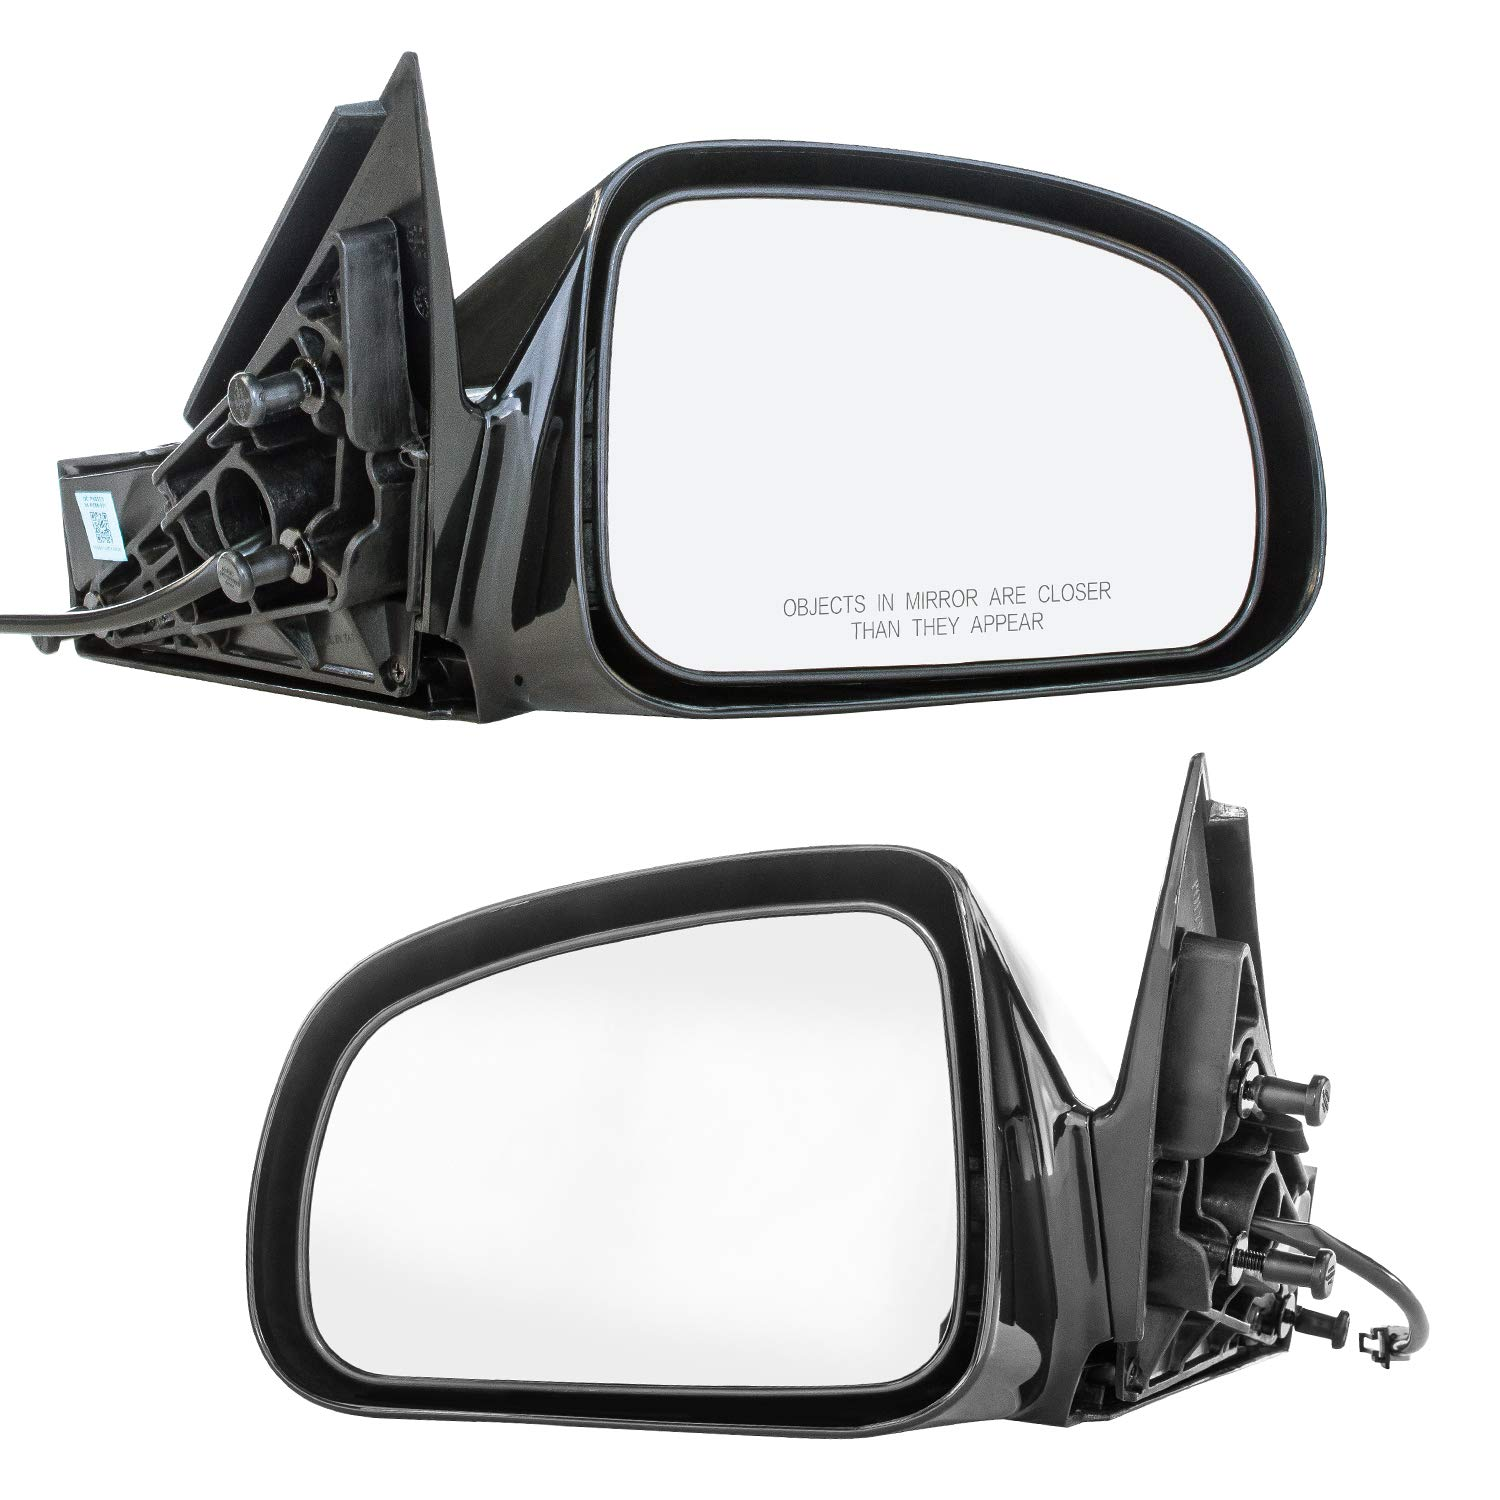 Driver and Passenger Side Mirrors for Pontiac Grand Prix (2004 2005 2006 2007 2008) Black Non-Heated Non-Folding OE Replacement Outside Rear View Door Mirrors